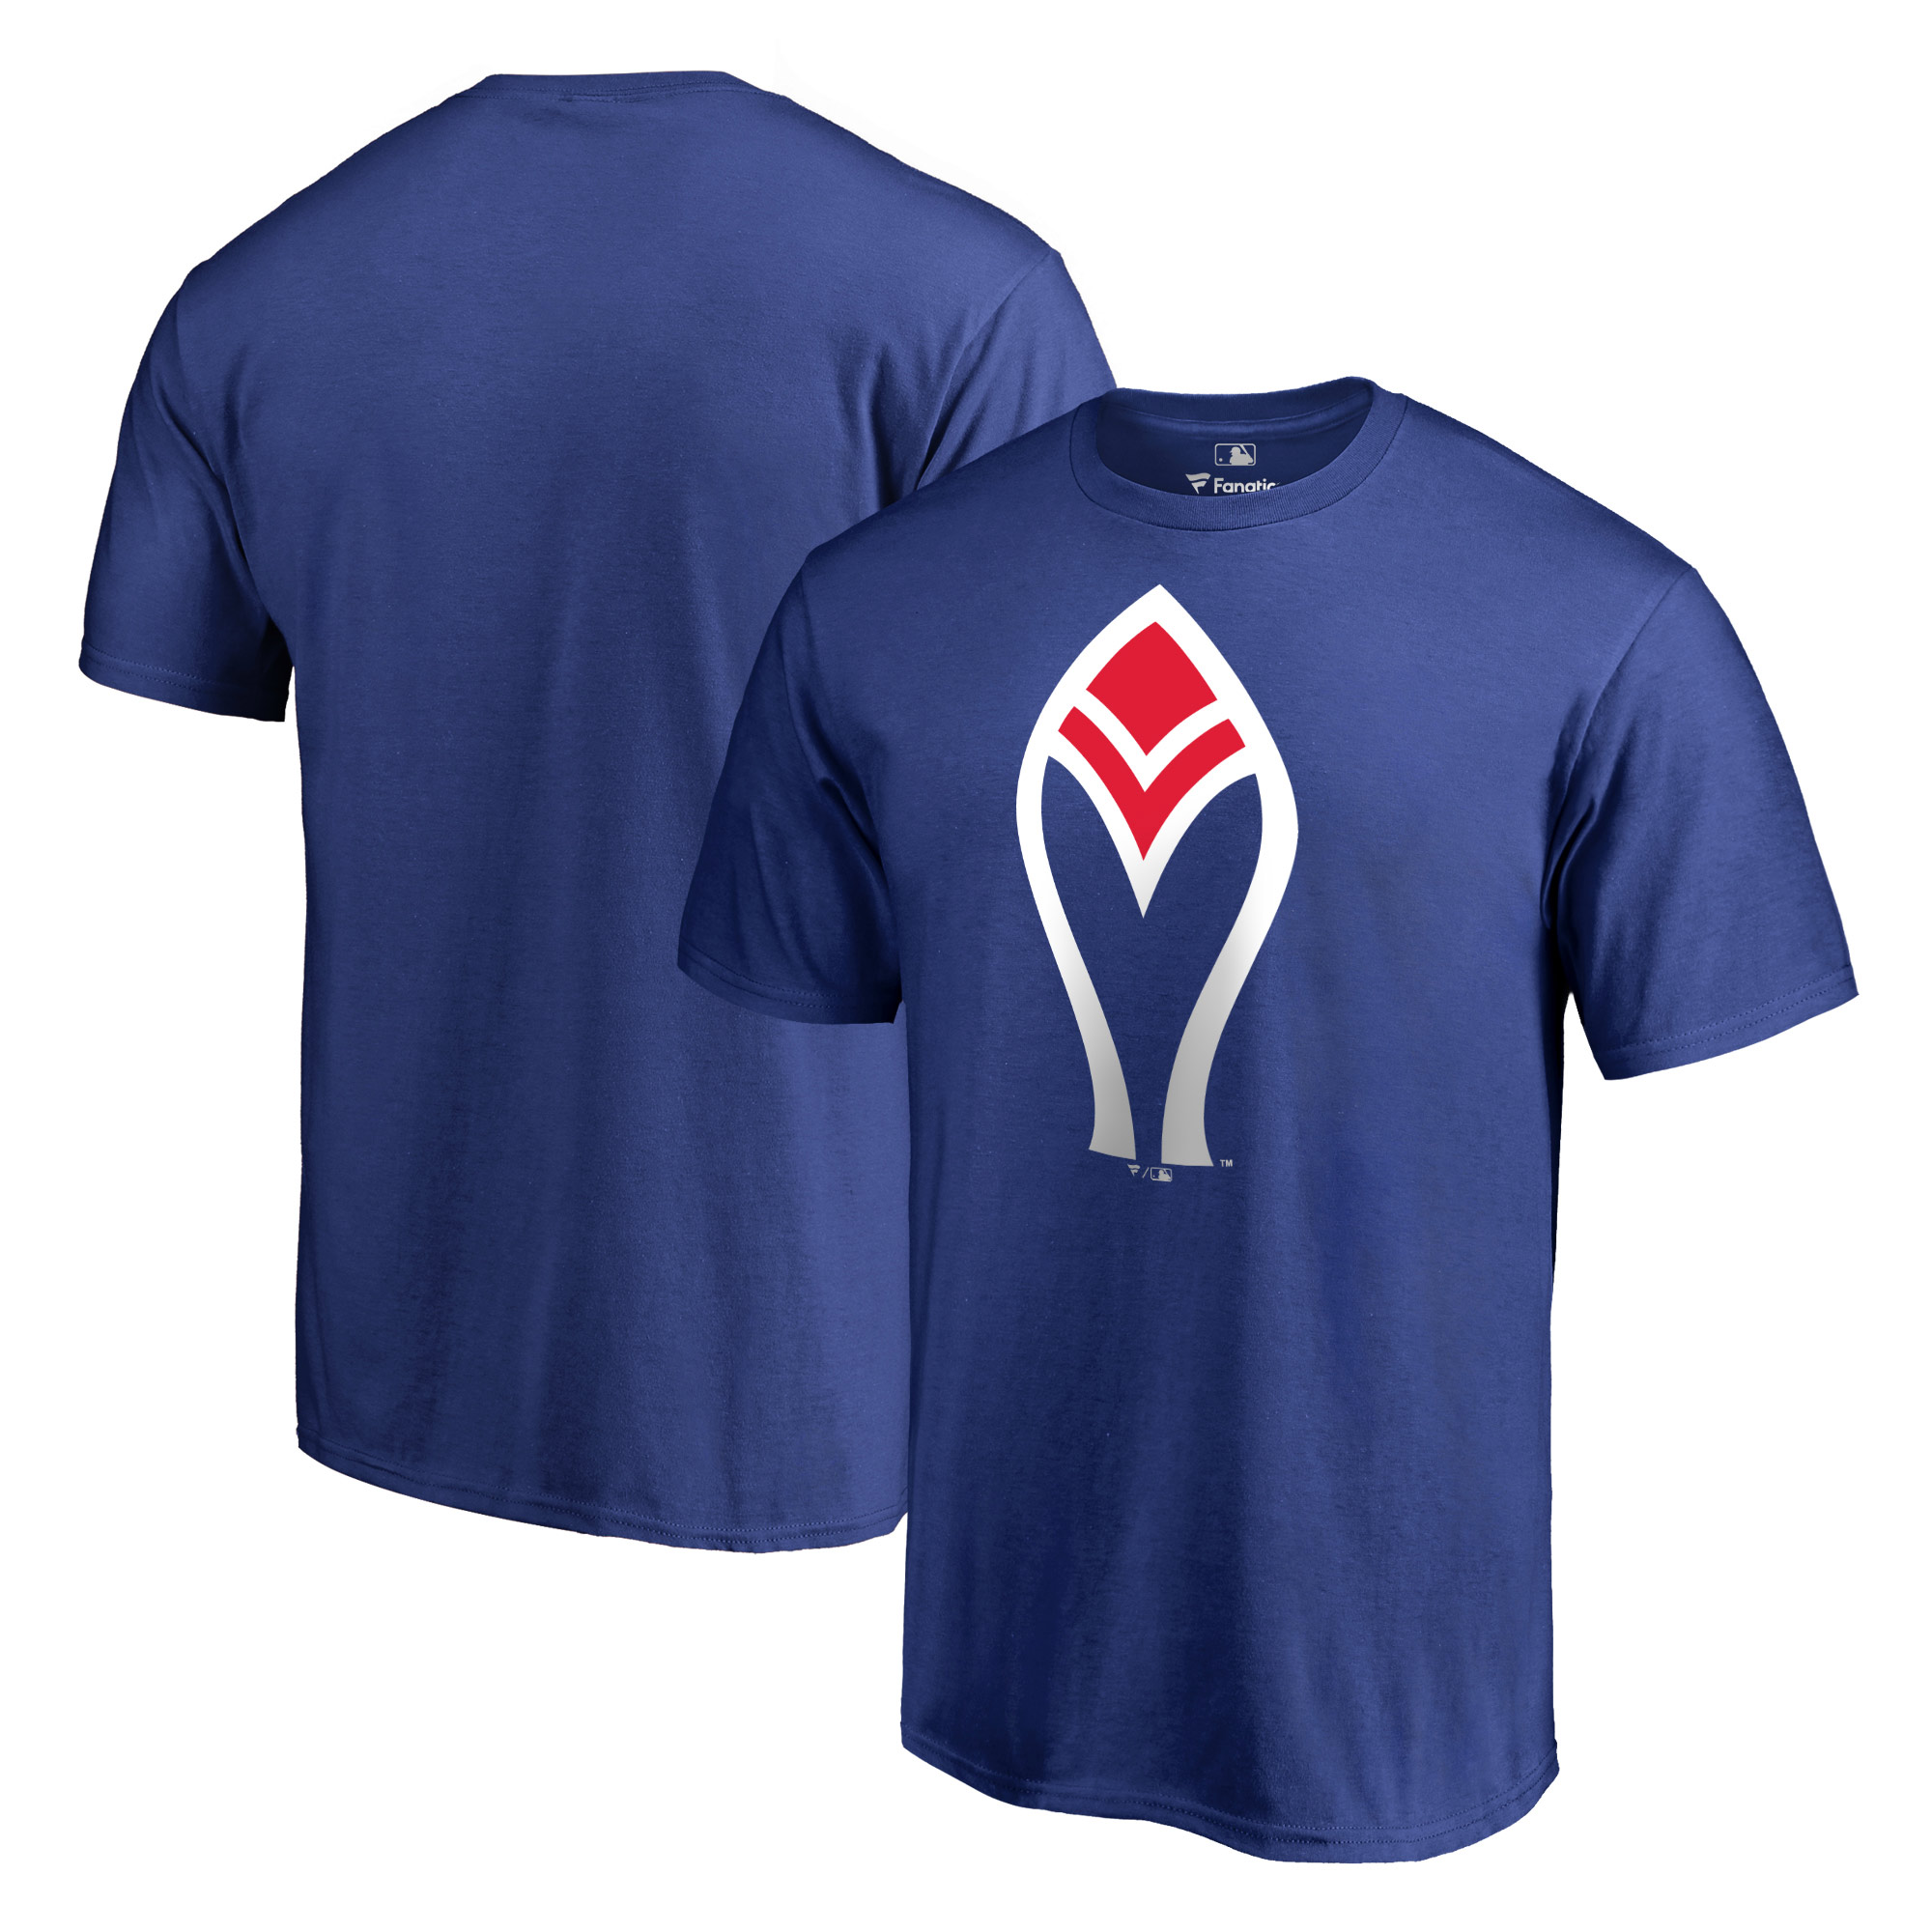 Atlanta Braves Fanatics Branded Cooperstown Collection Forbes T-Shirt - Royal